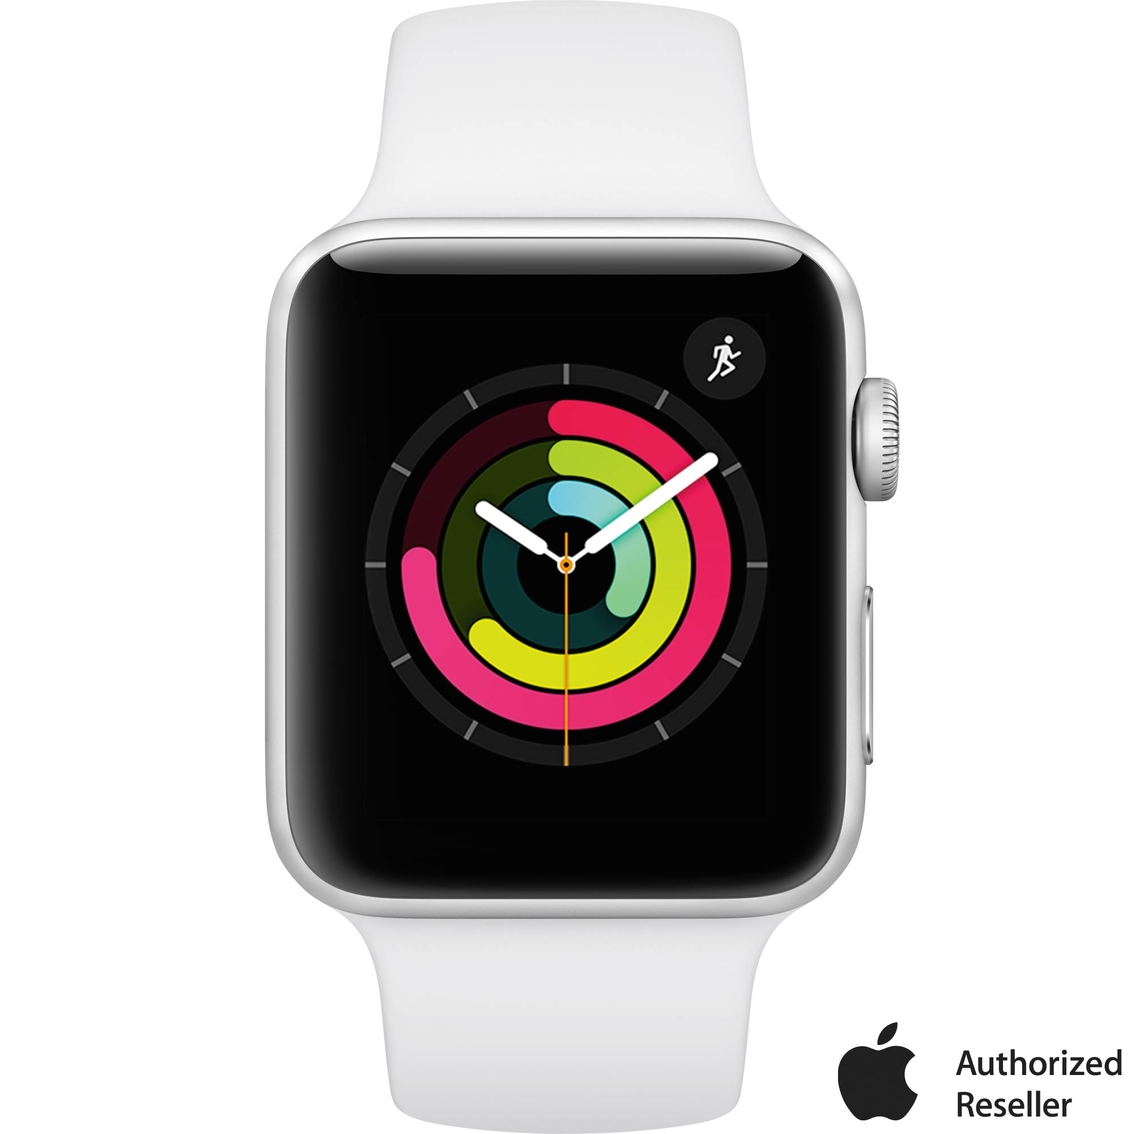 f3f891036 Apple Watch Series 3 Gps Silver Aluminum Case With White Sport Band ...